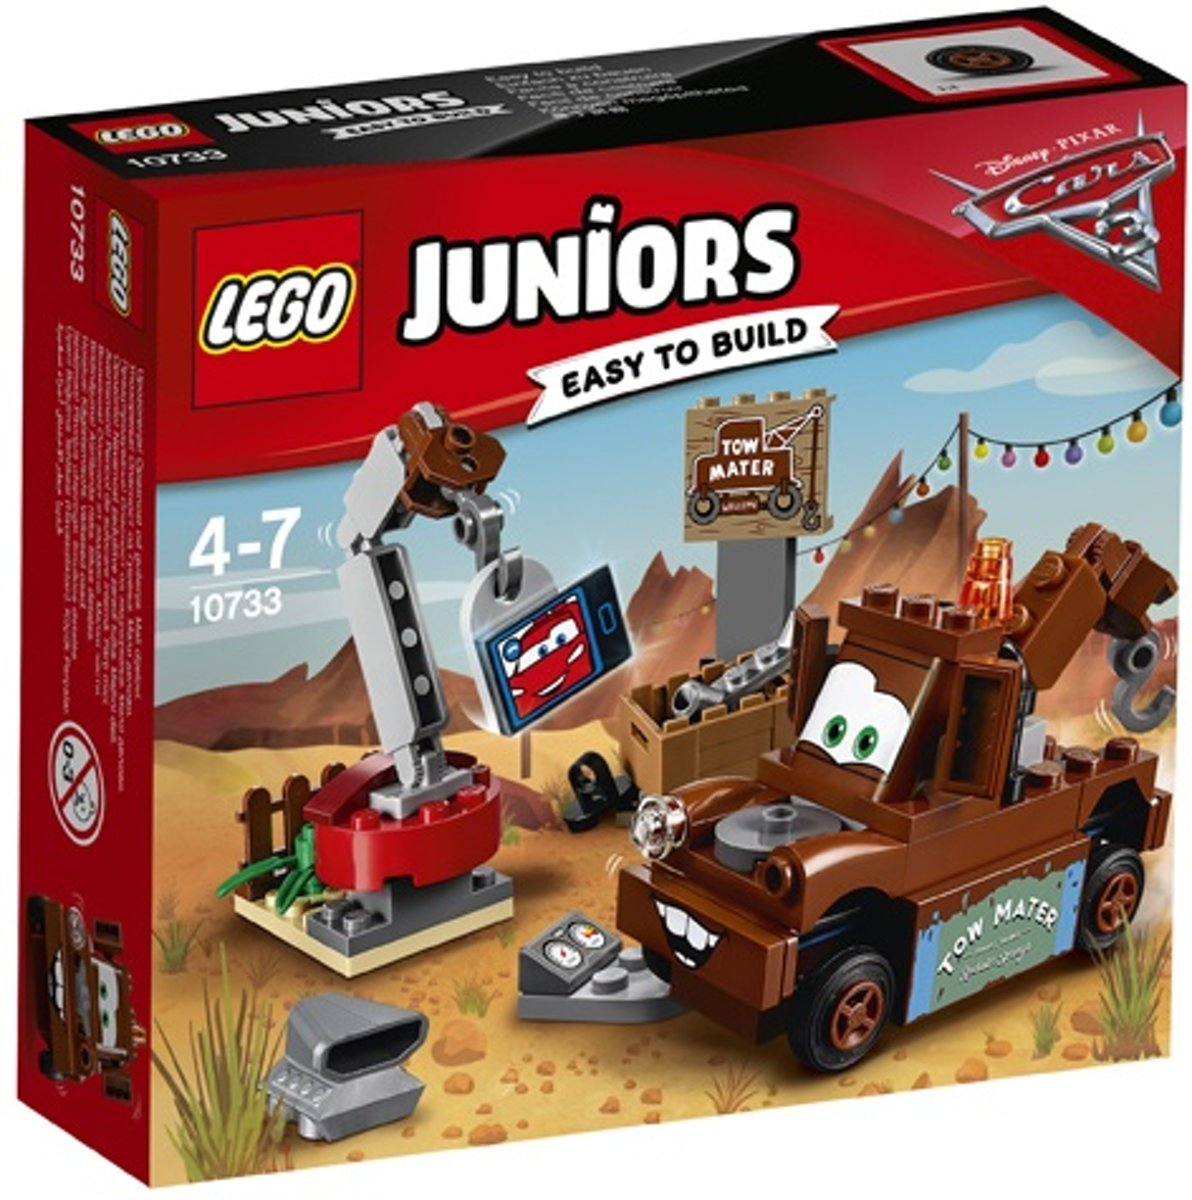 Lego Juniors: Disney Cars 3 Takels Sloopterrein (10733)